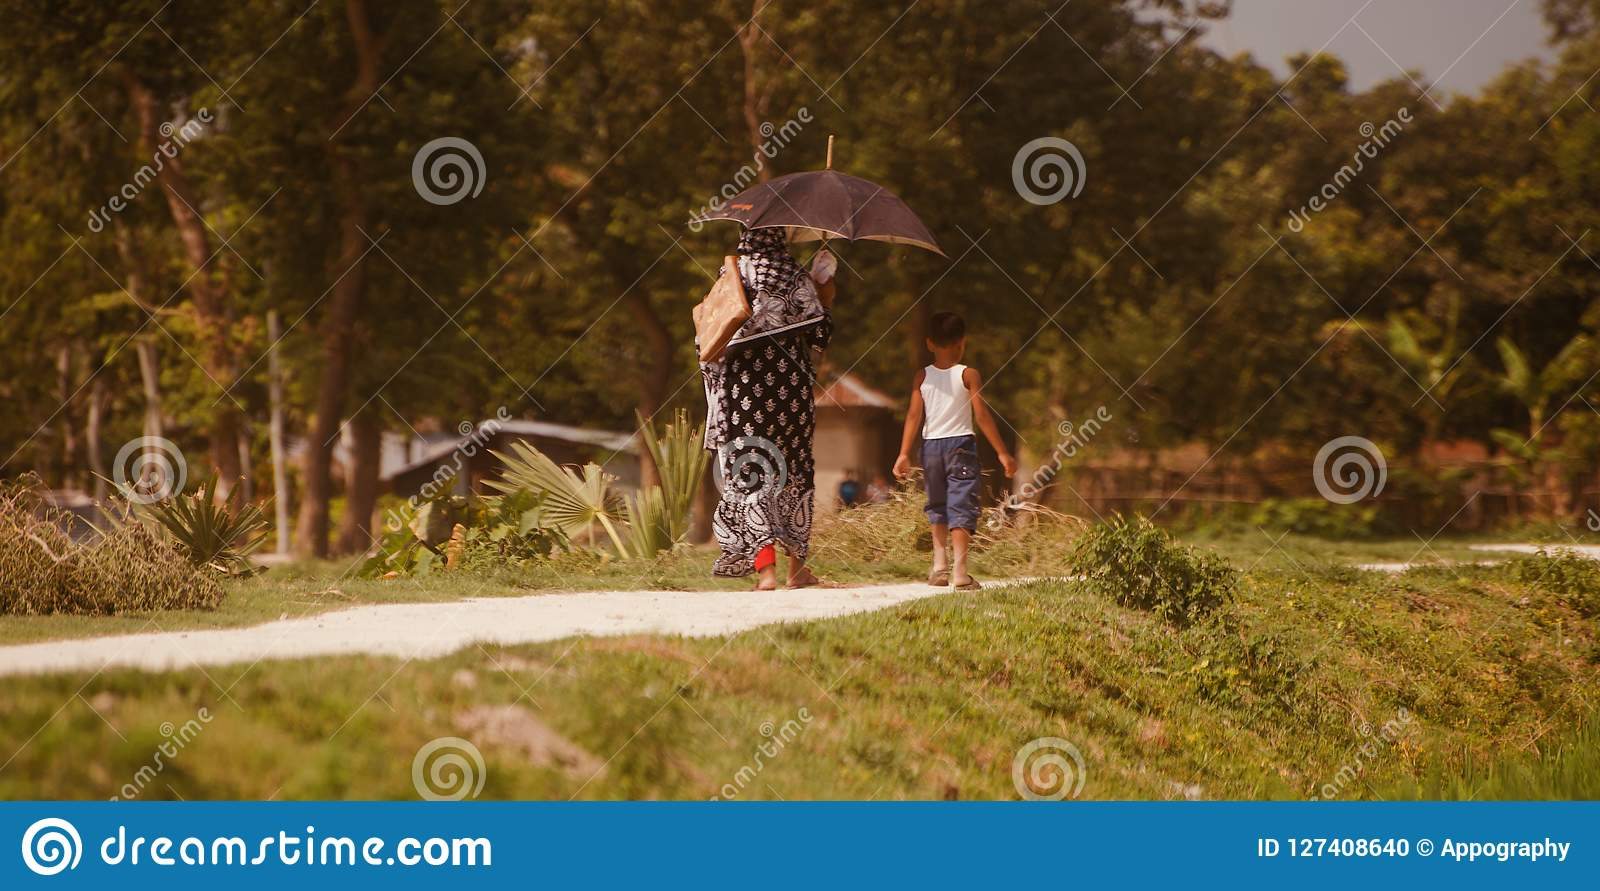 An woman and a kids walking in a village road unique photo